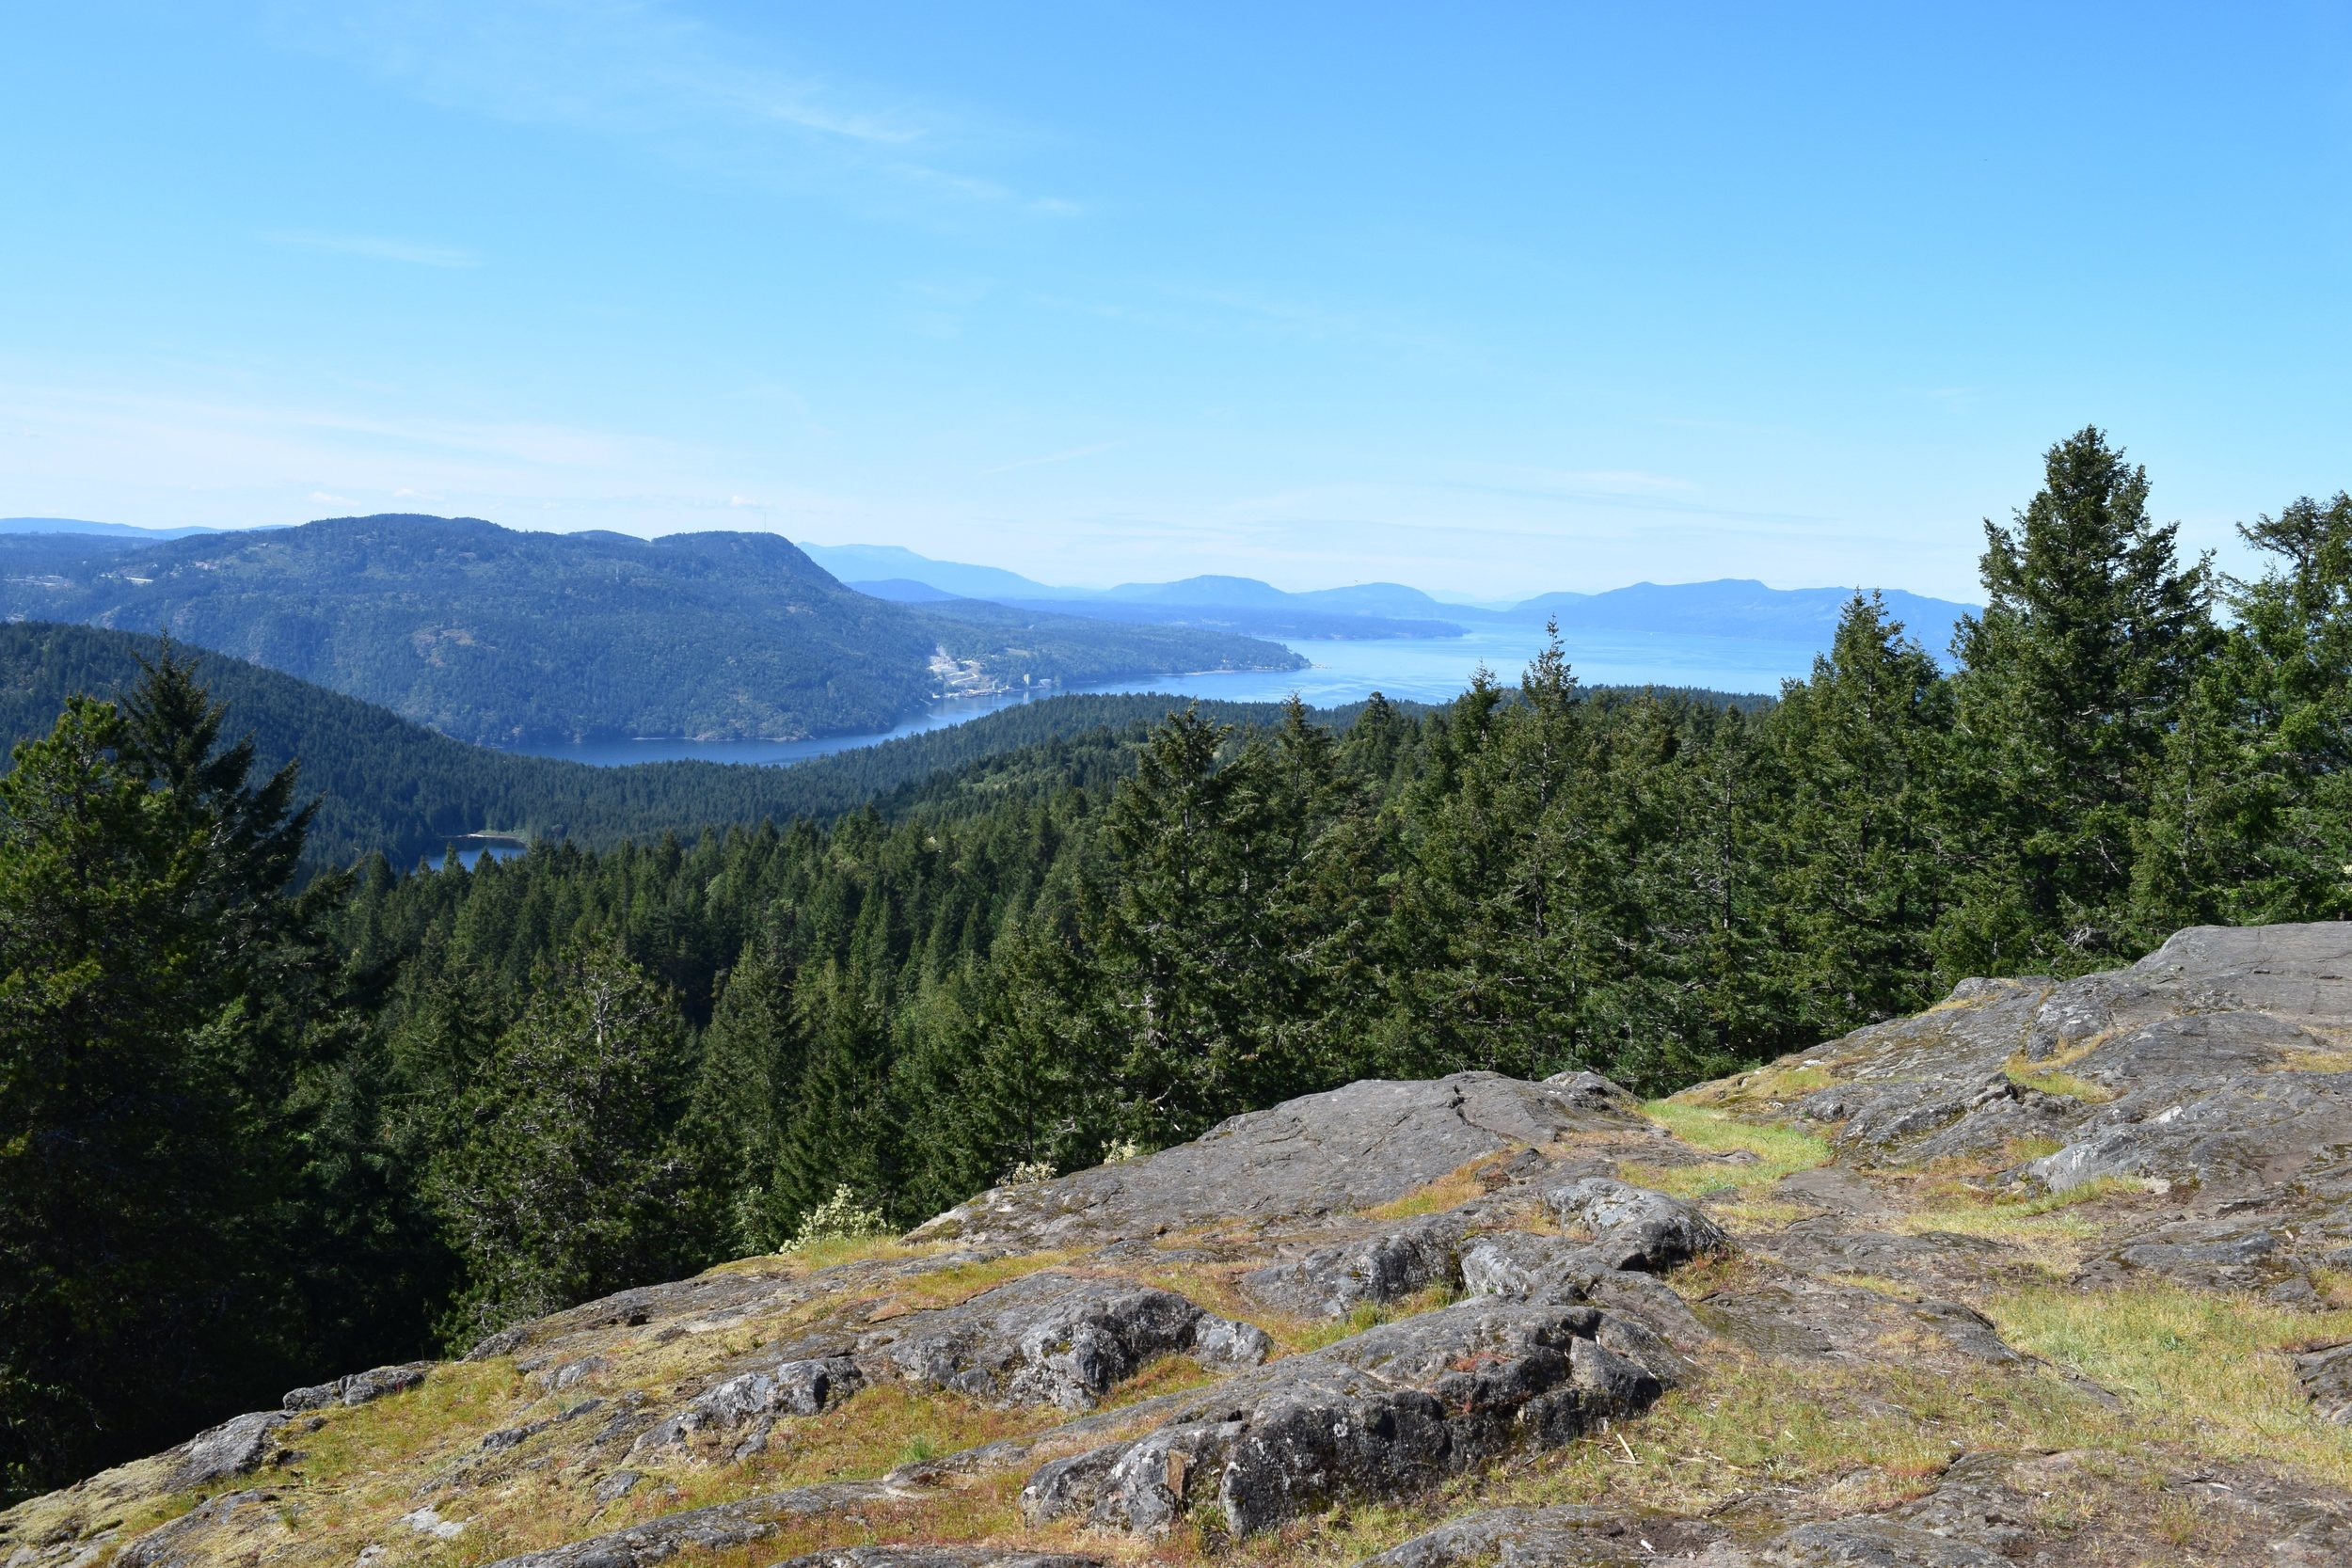 View of Vancouver Island